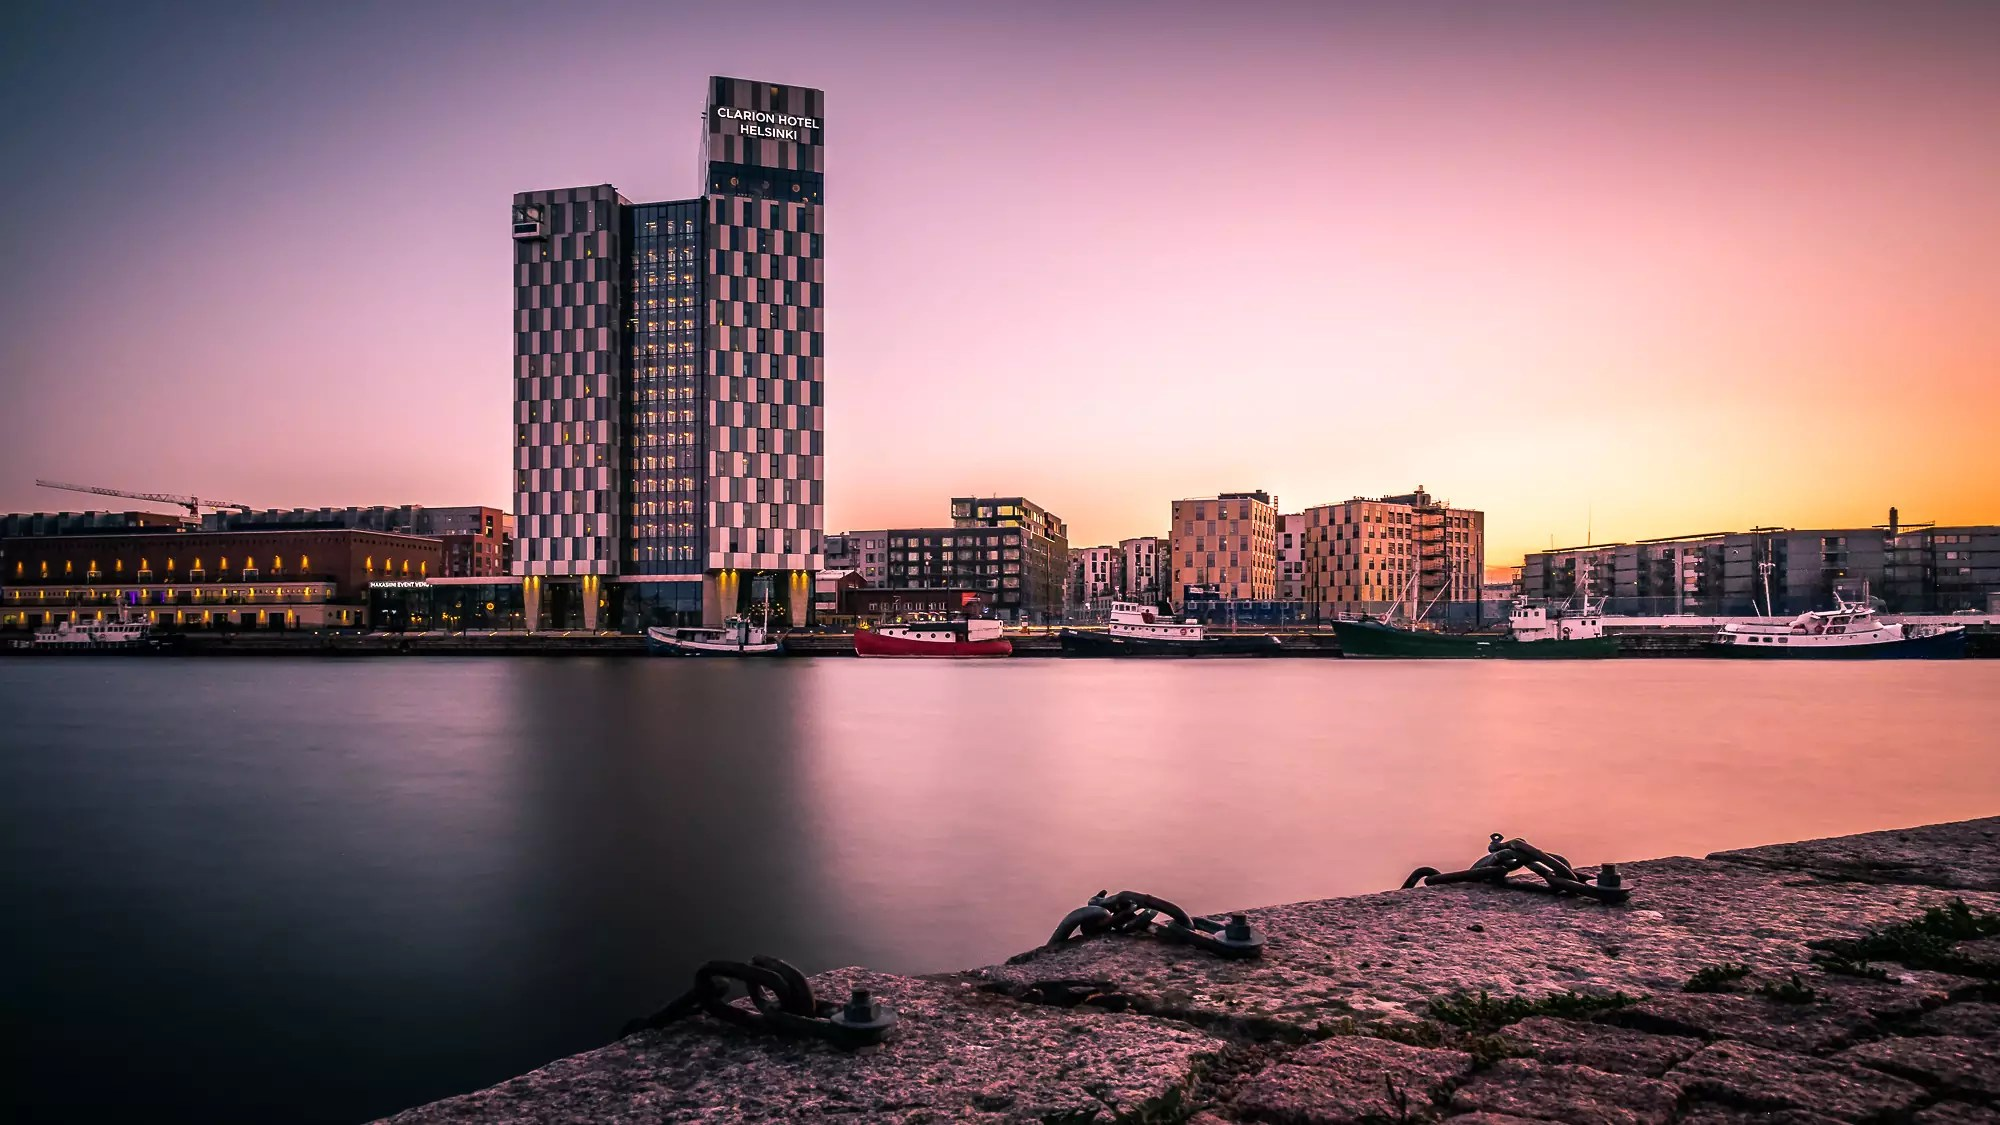 Sunset in Helsinki - Finland - photo by Giuseppe Milo under CC BY 2.0